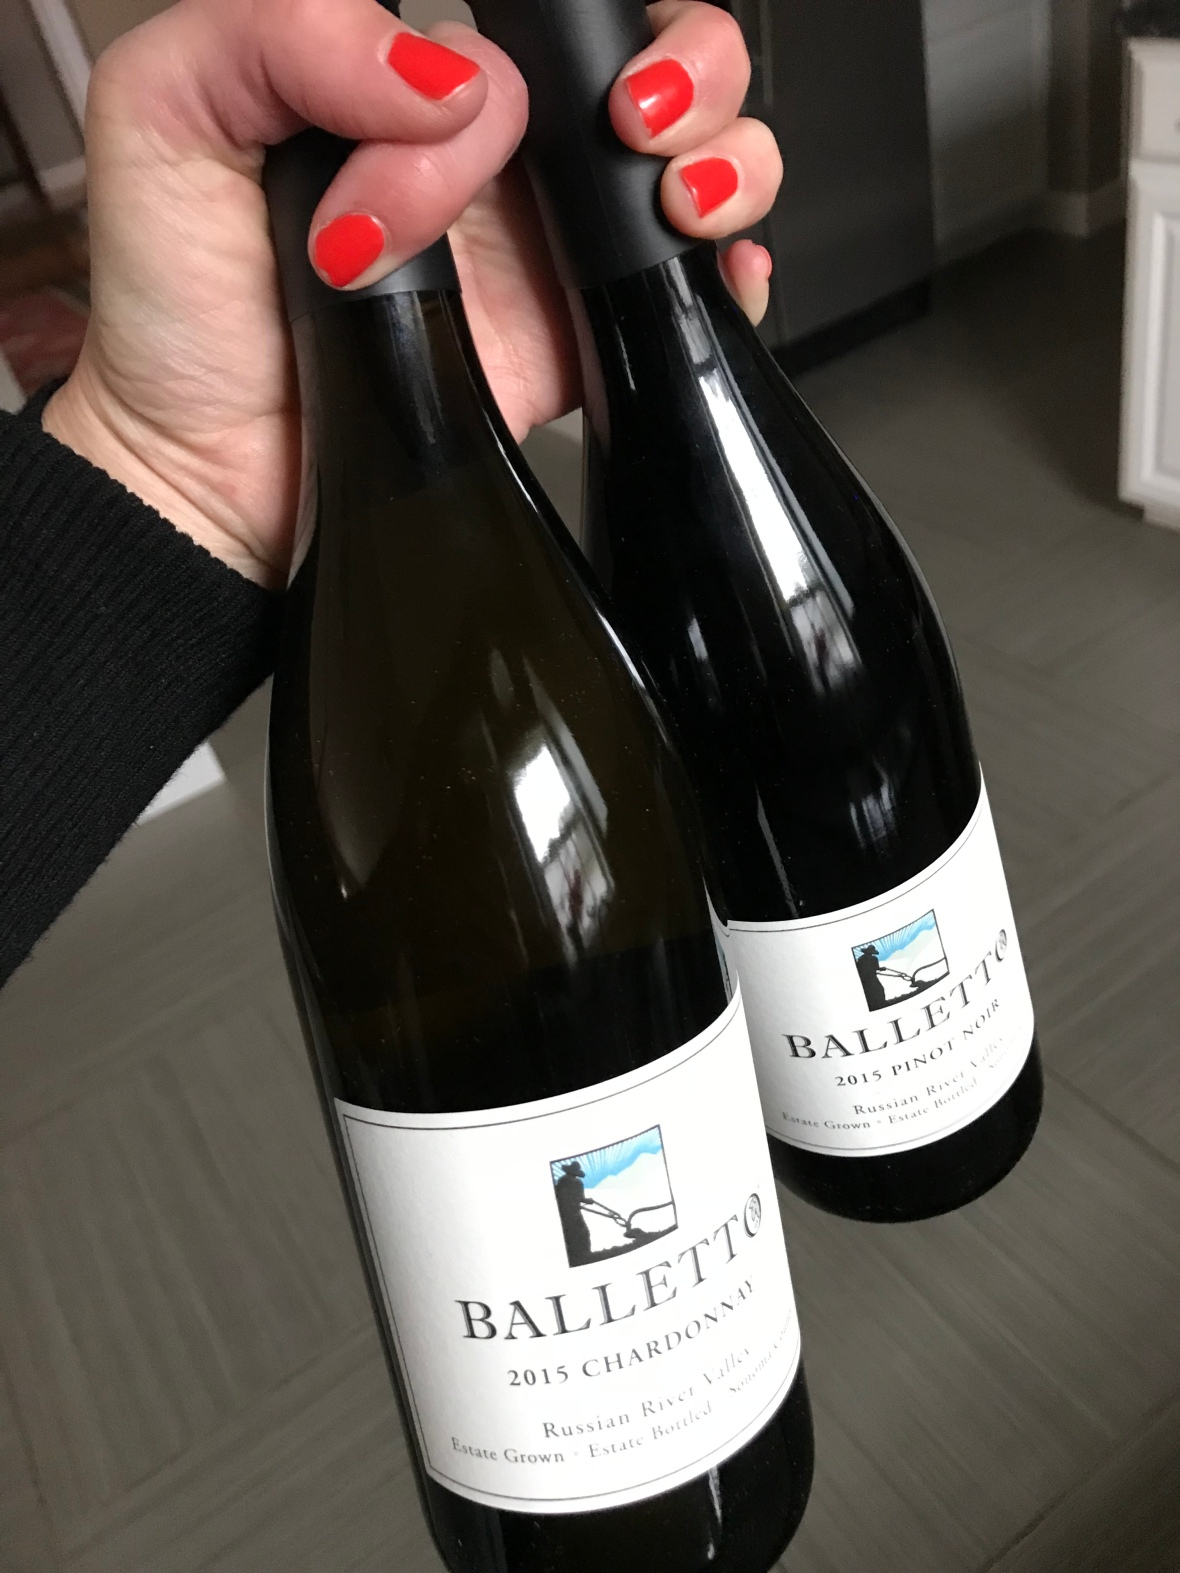 Balletto Vineyards, Sonoma Wine, Chardonnay, Pinot Noir